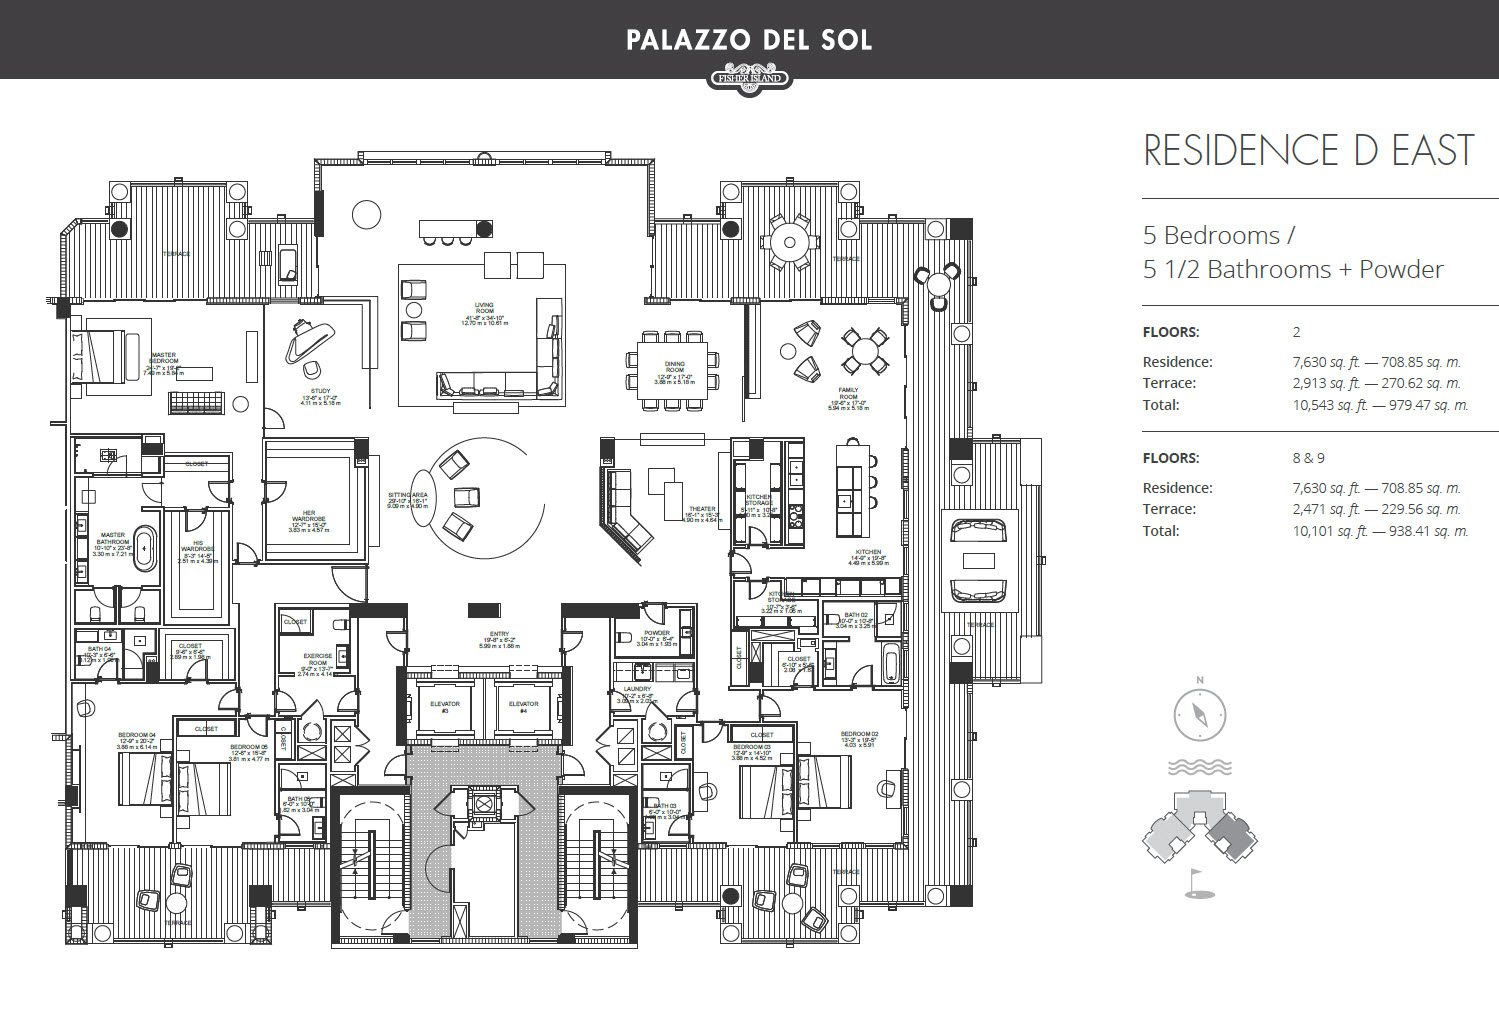 Palazzo Del Sol residence d east floor plan